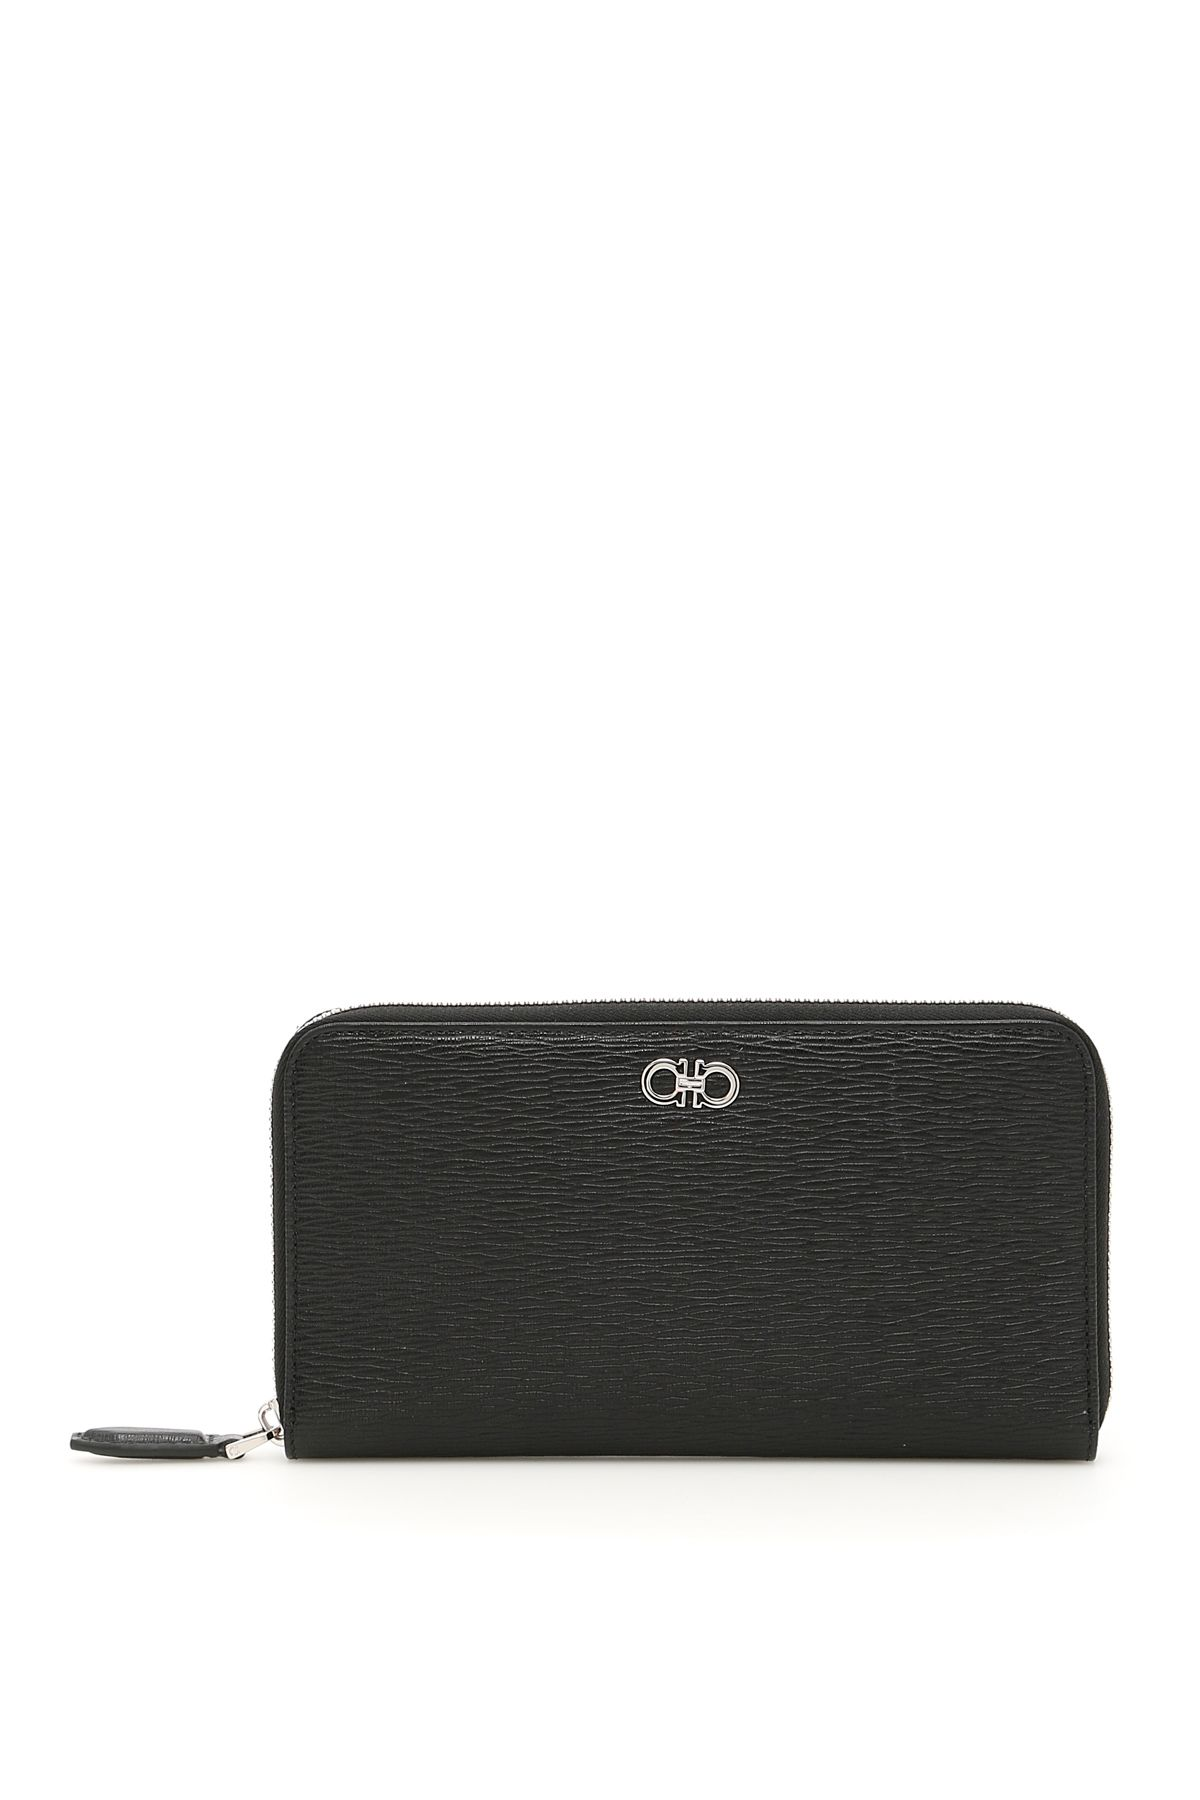 Revival Wallet With Ganci